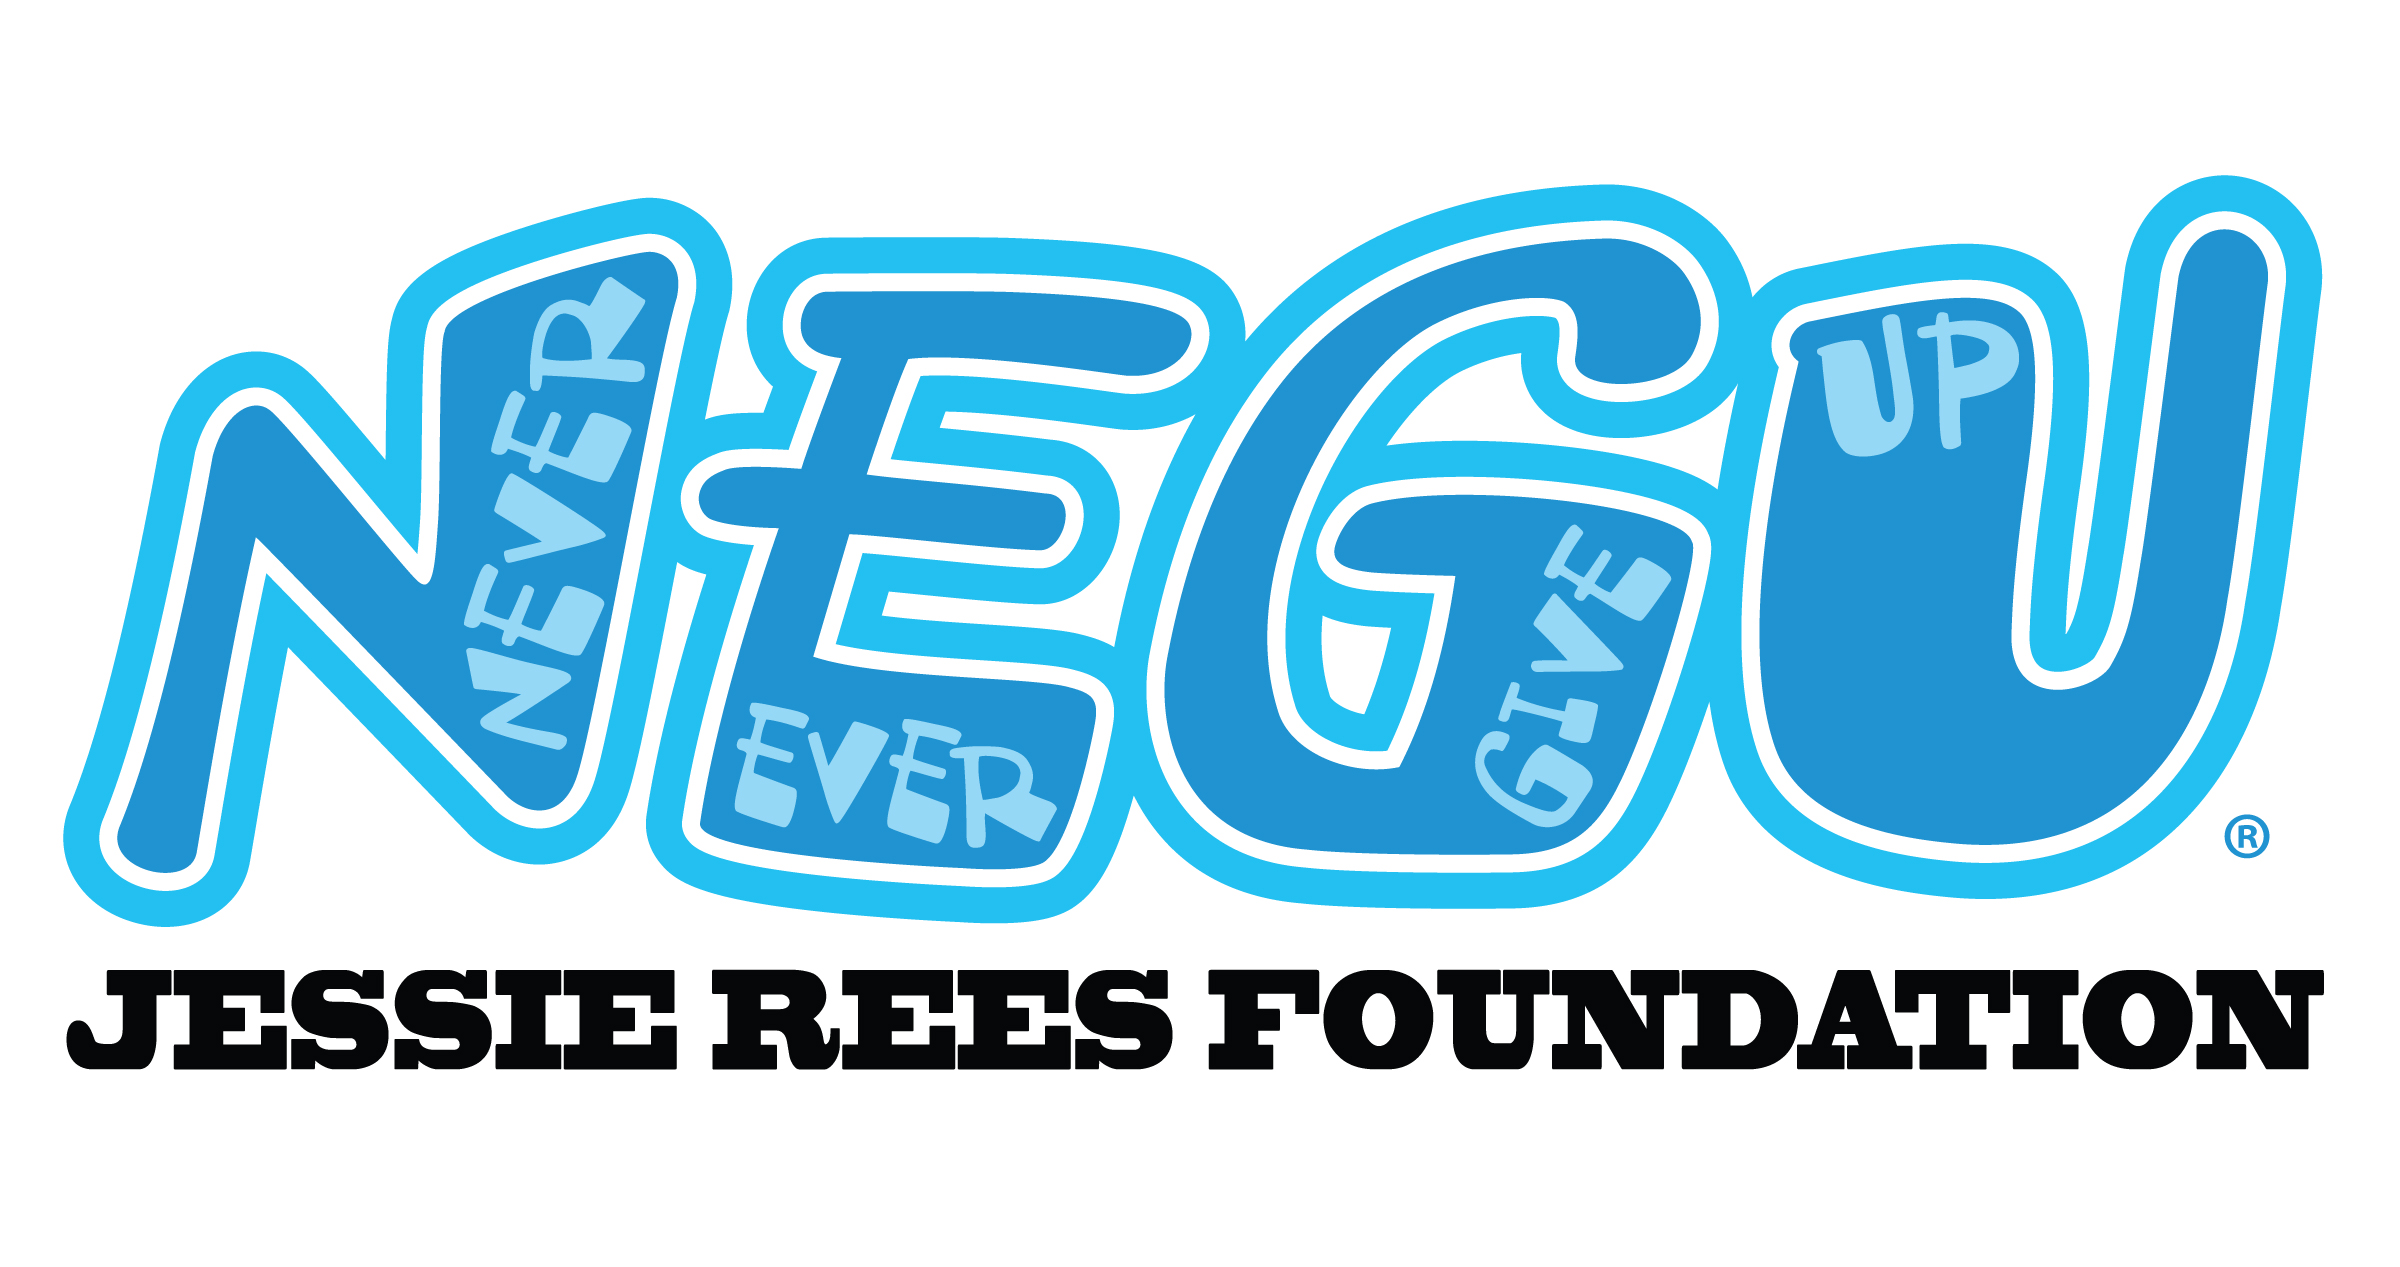 Jessie Rees Foundation logo